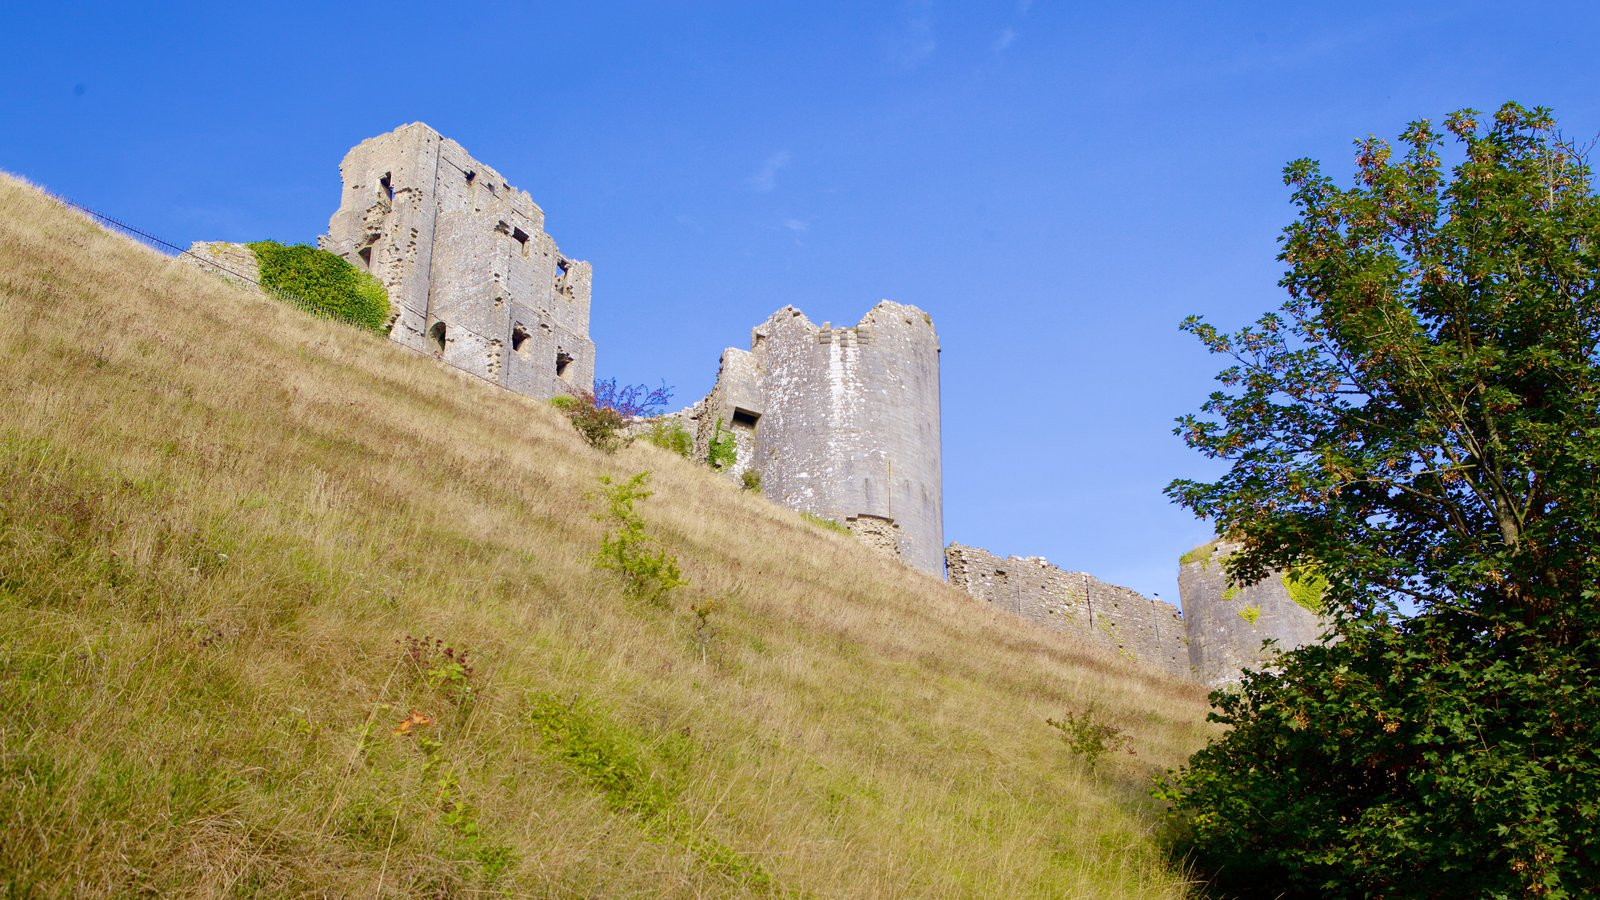 Corfe Castle showing heritage elements, tranquil scenes and a ruin